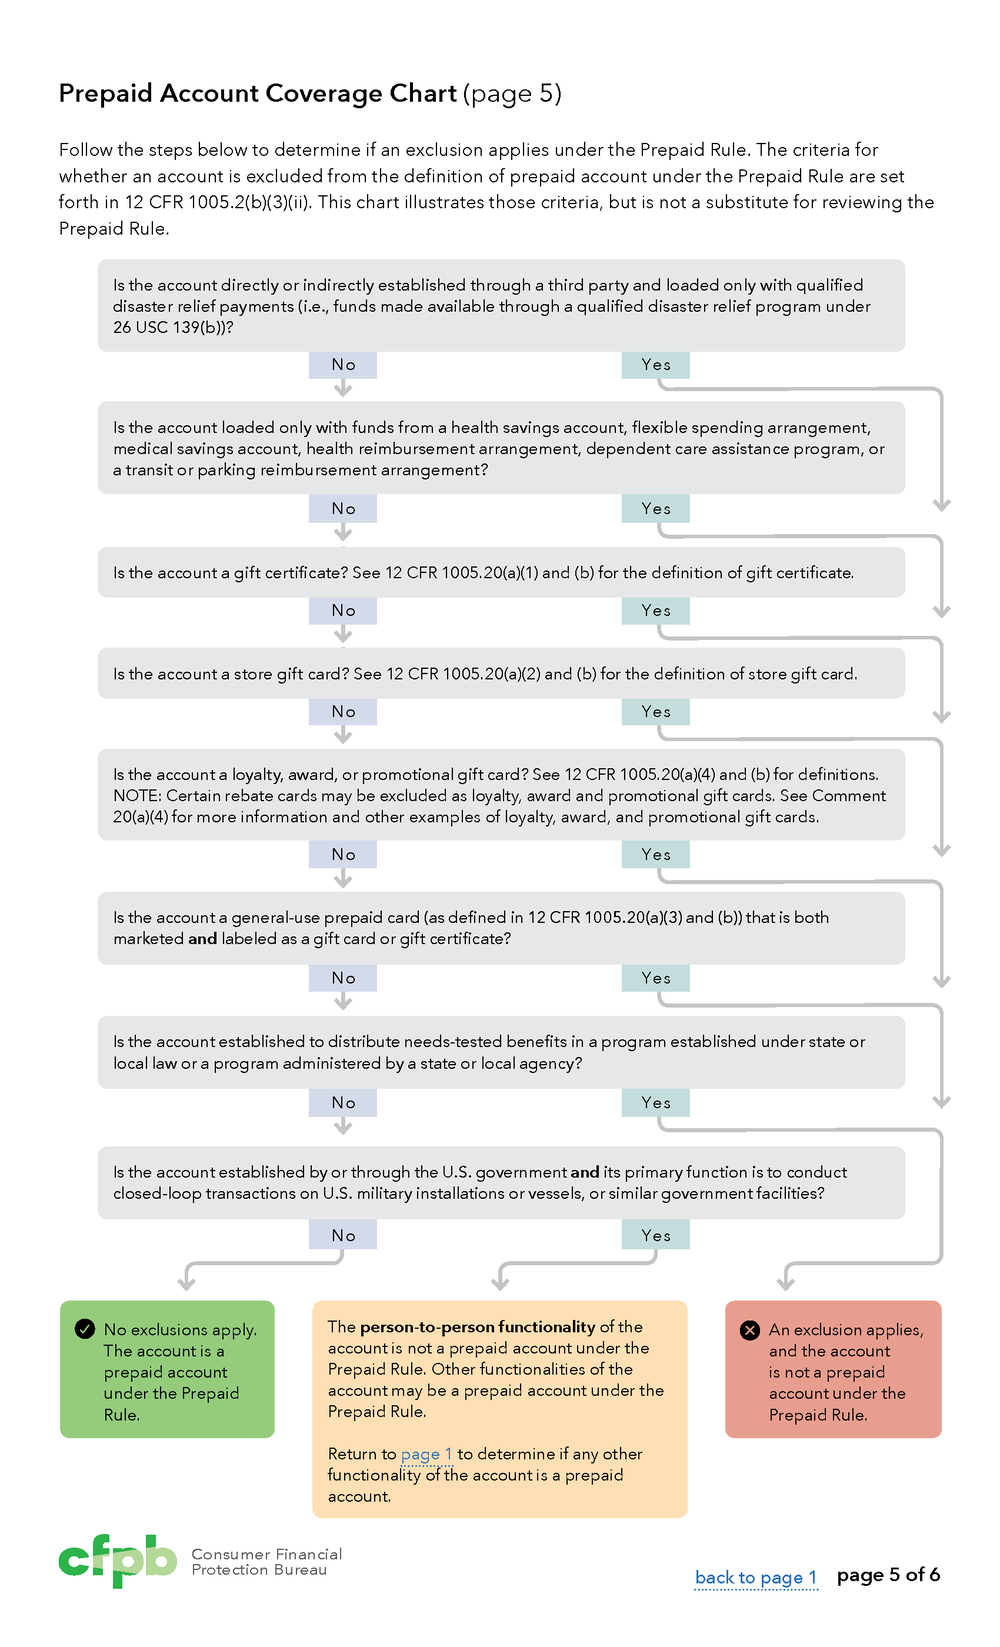 coverage chart page 5